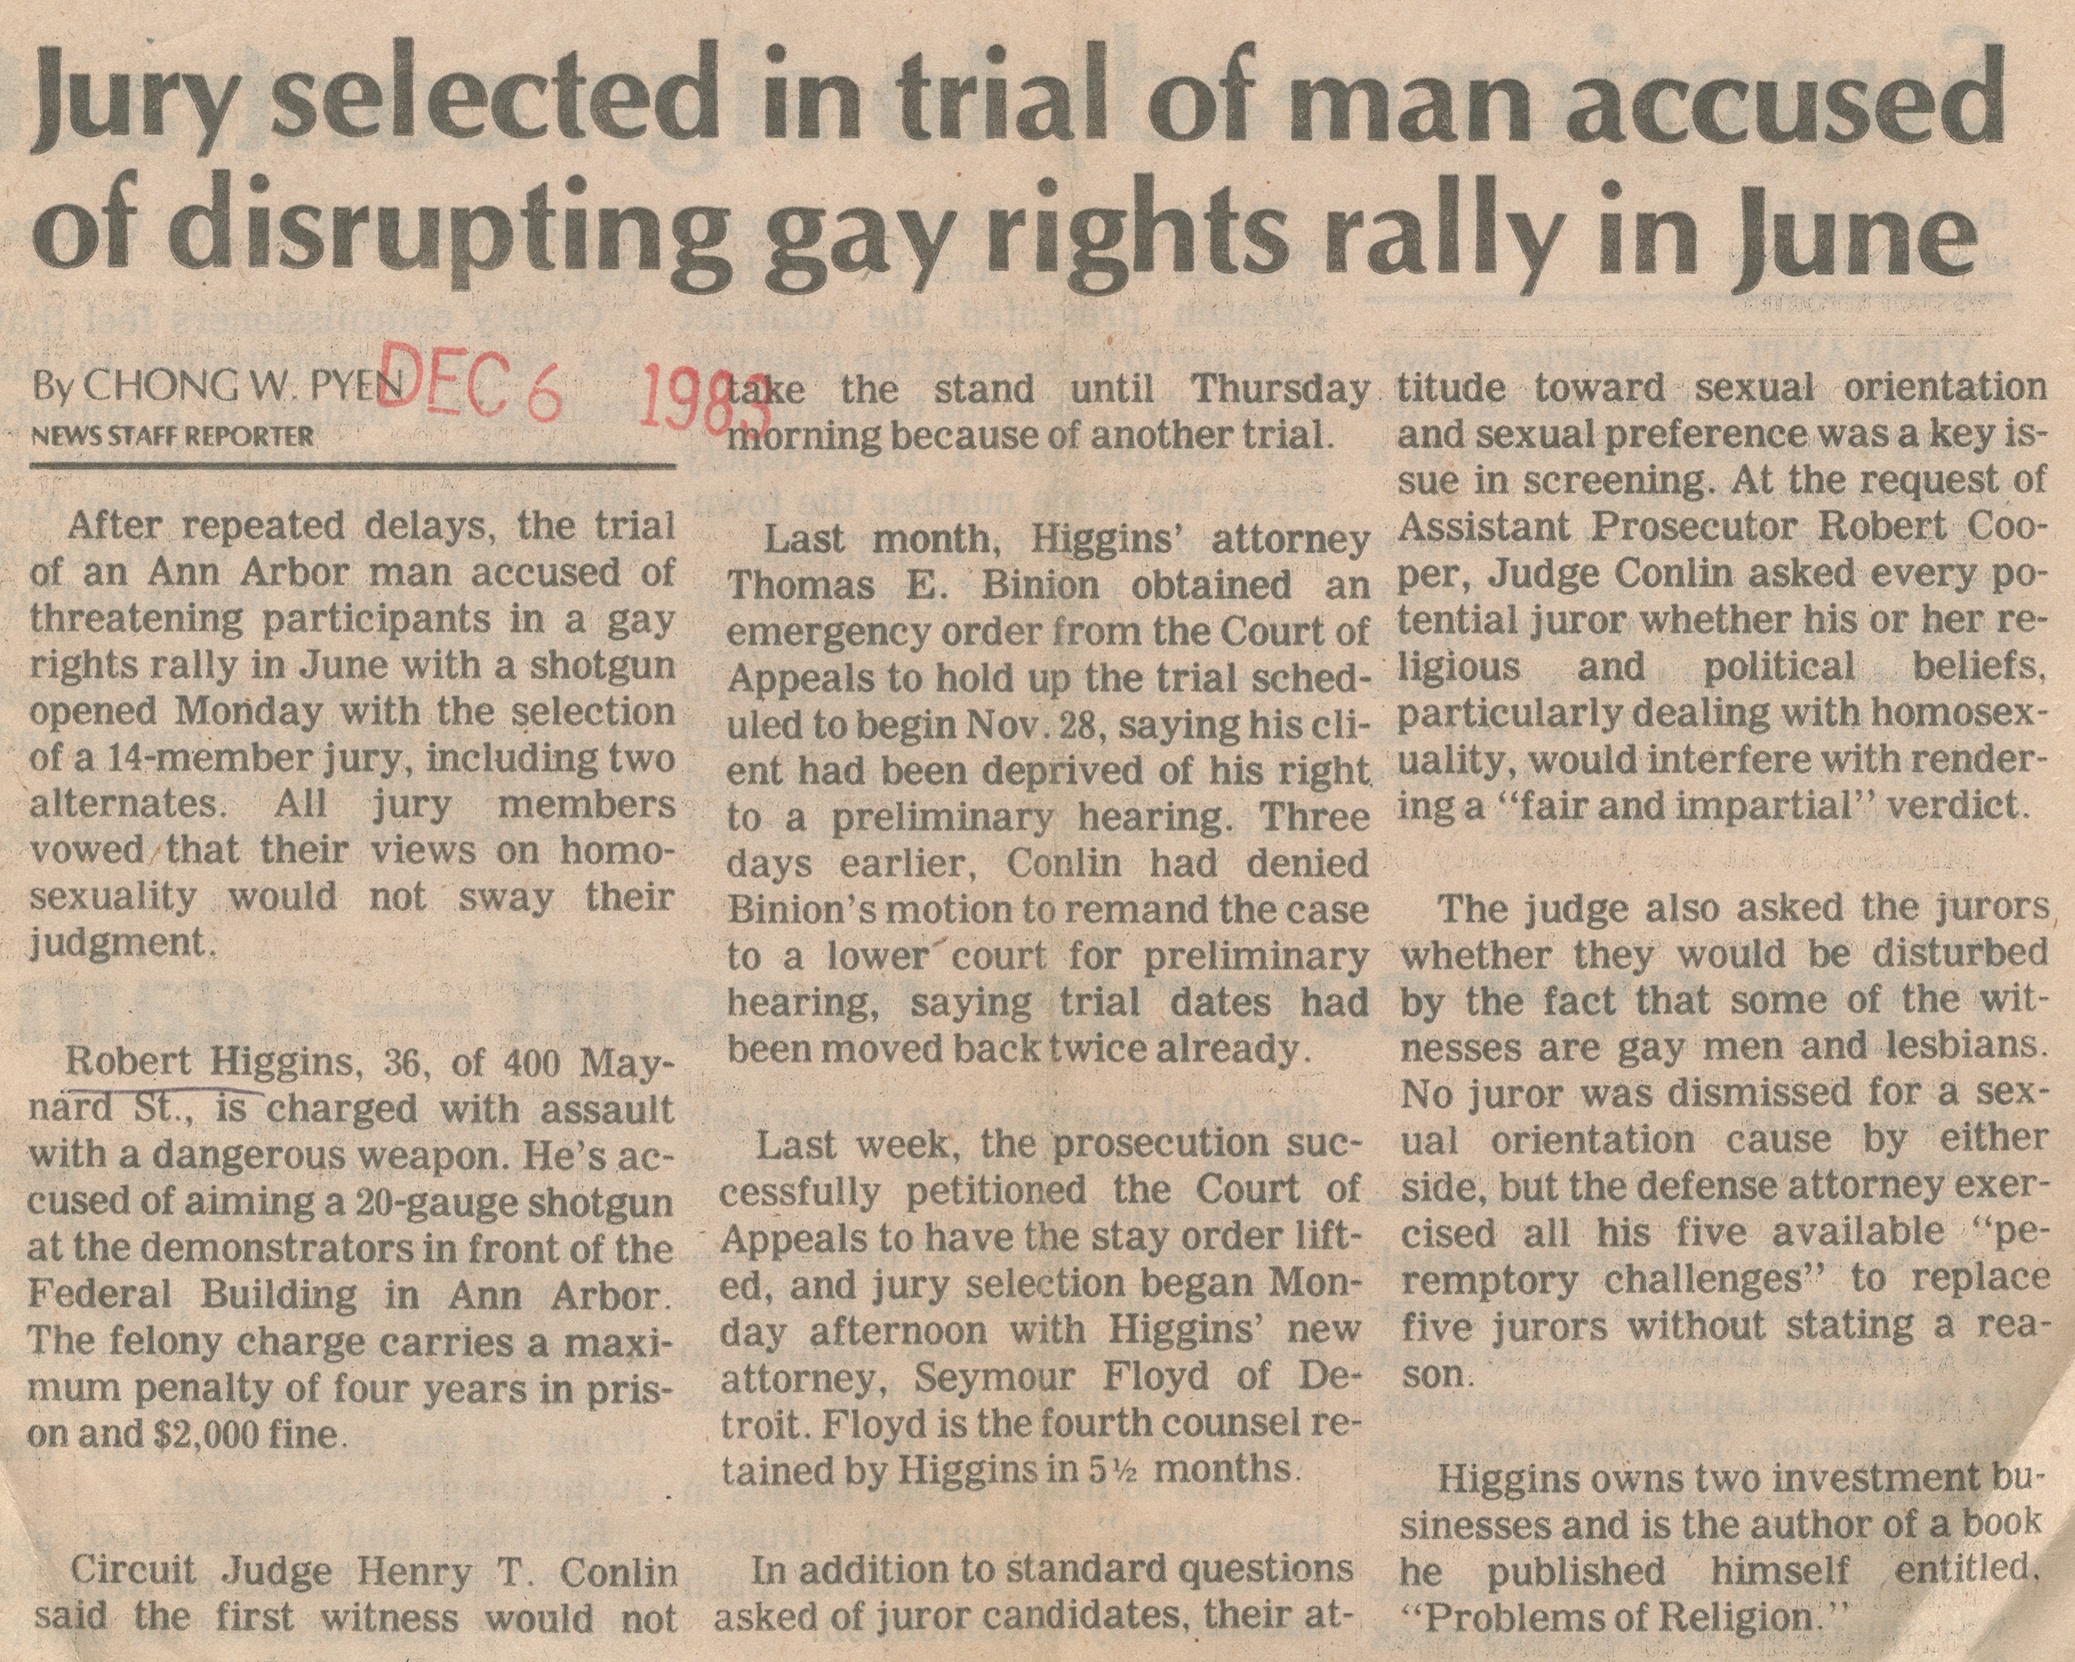 Jury selected in trial of man accused of disrupting gay rights rally in June image